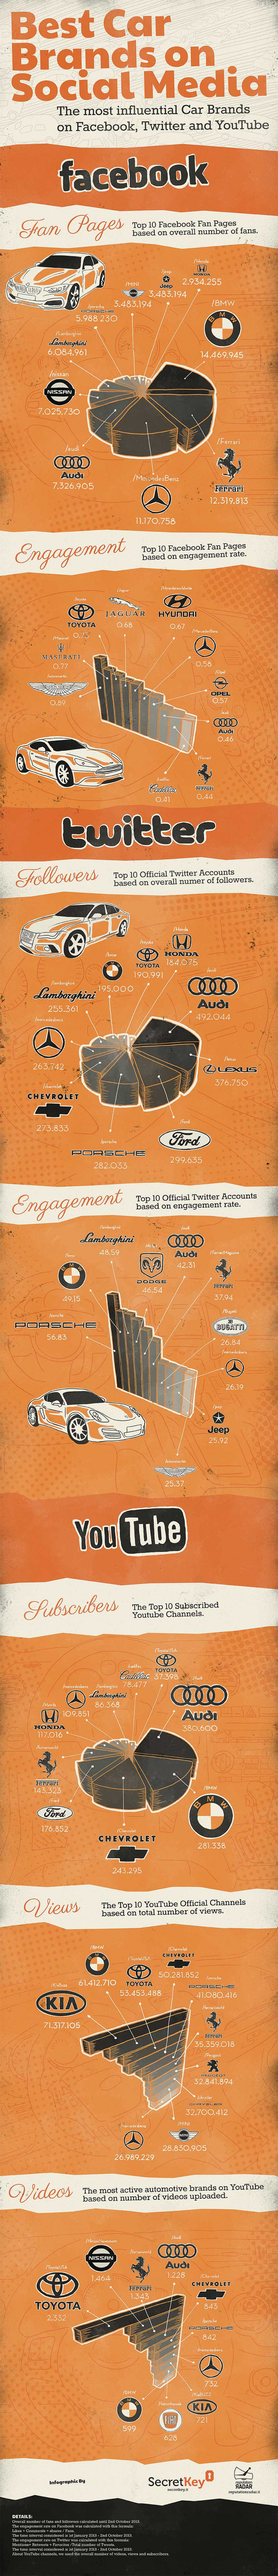 Best Car Brands on Social Media Infographic